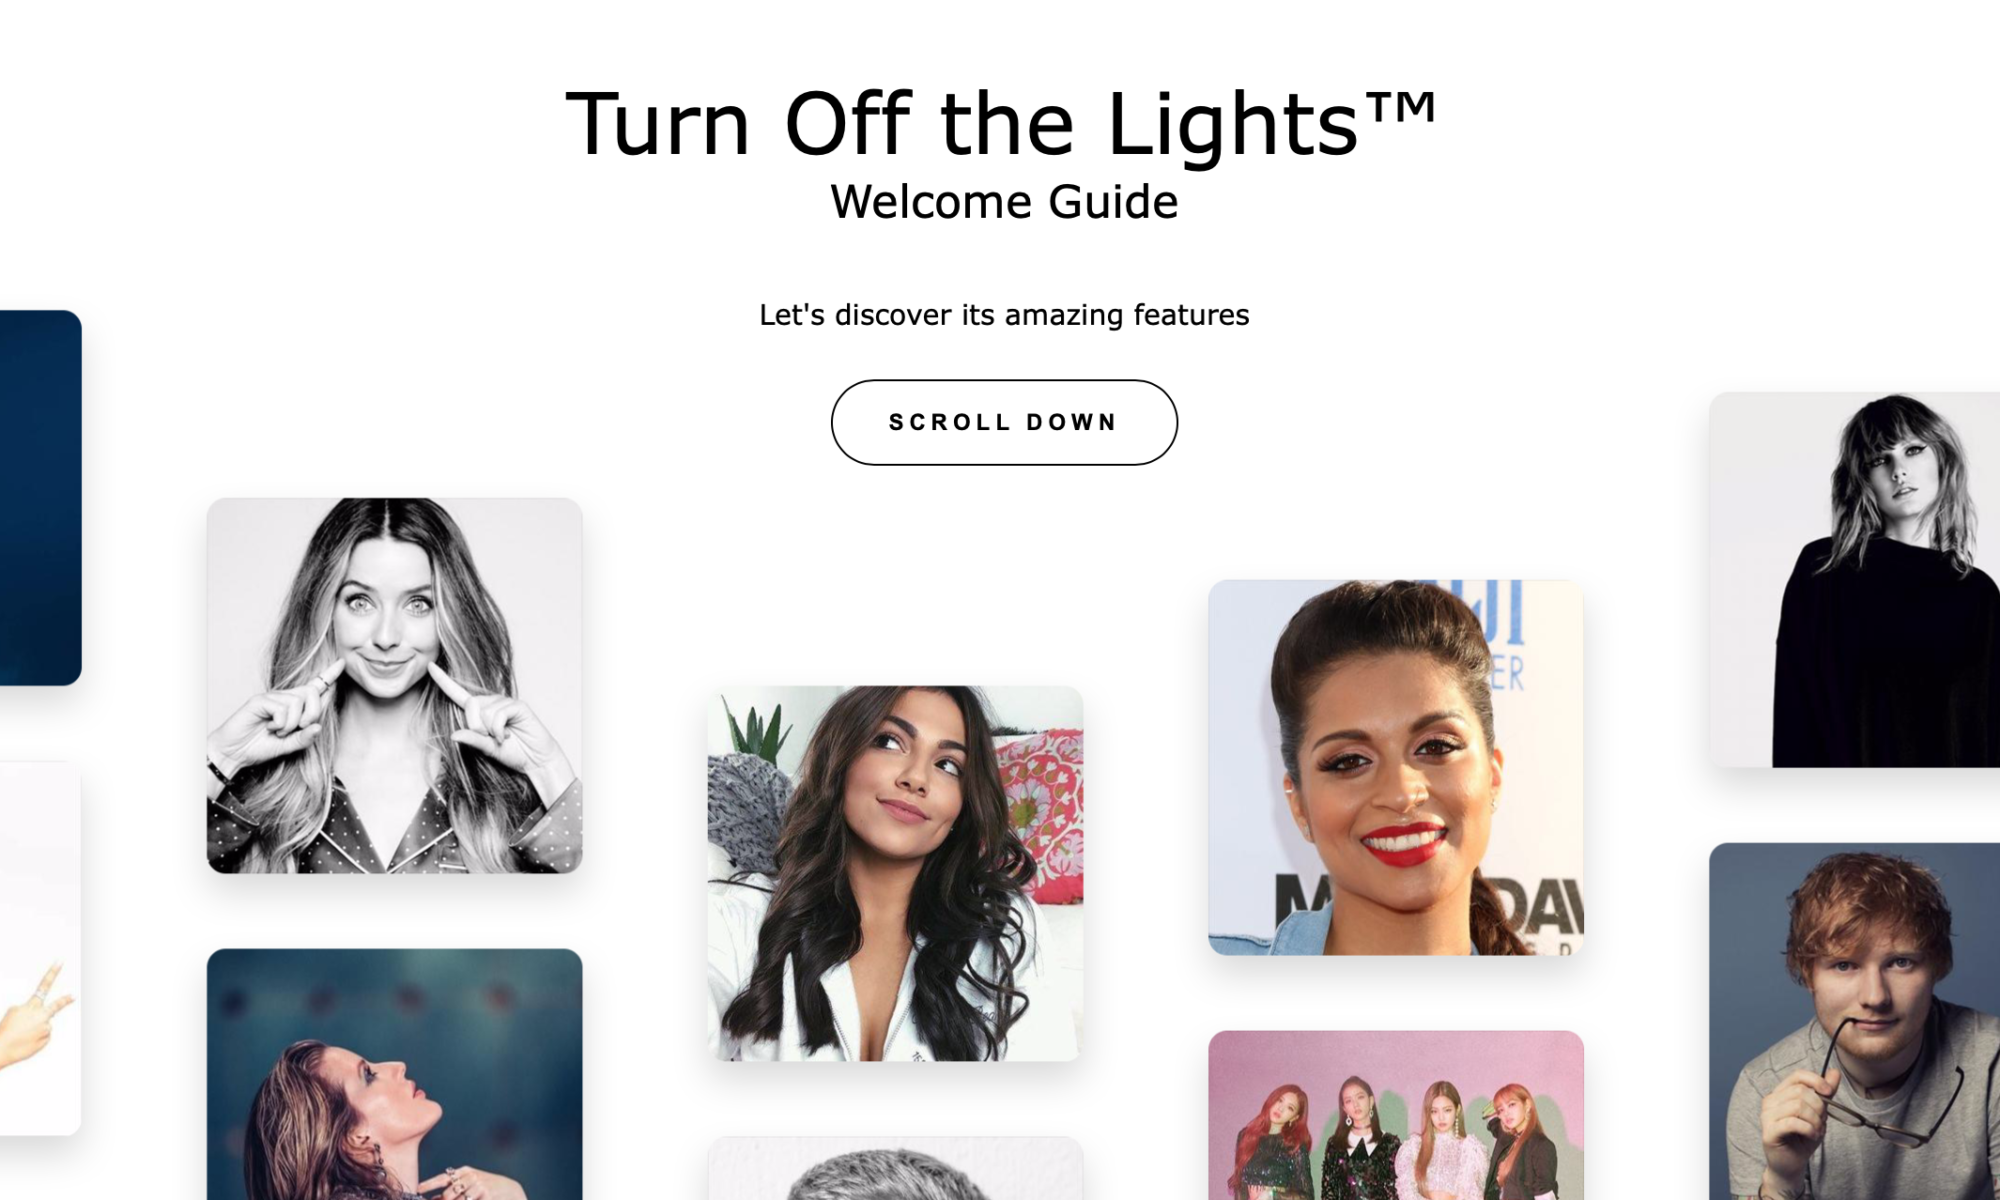 Interactive Welcome Guide Turn Off the Lights browser extension